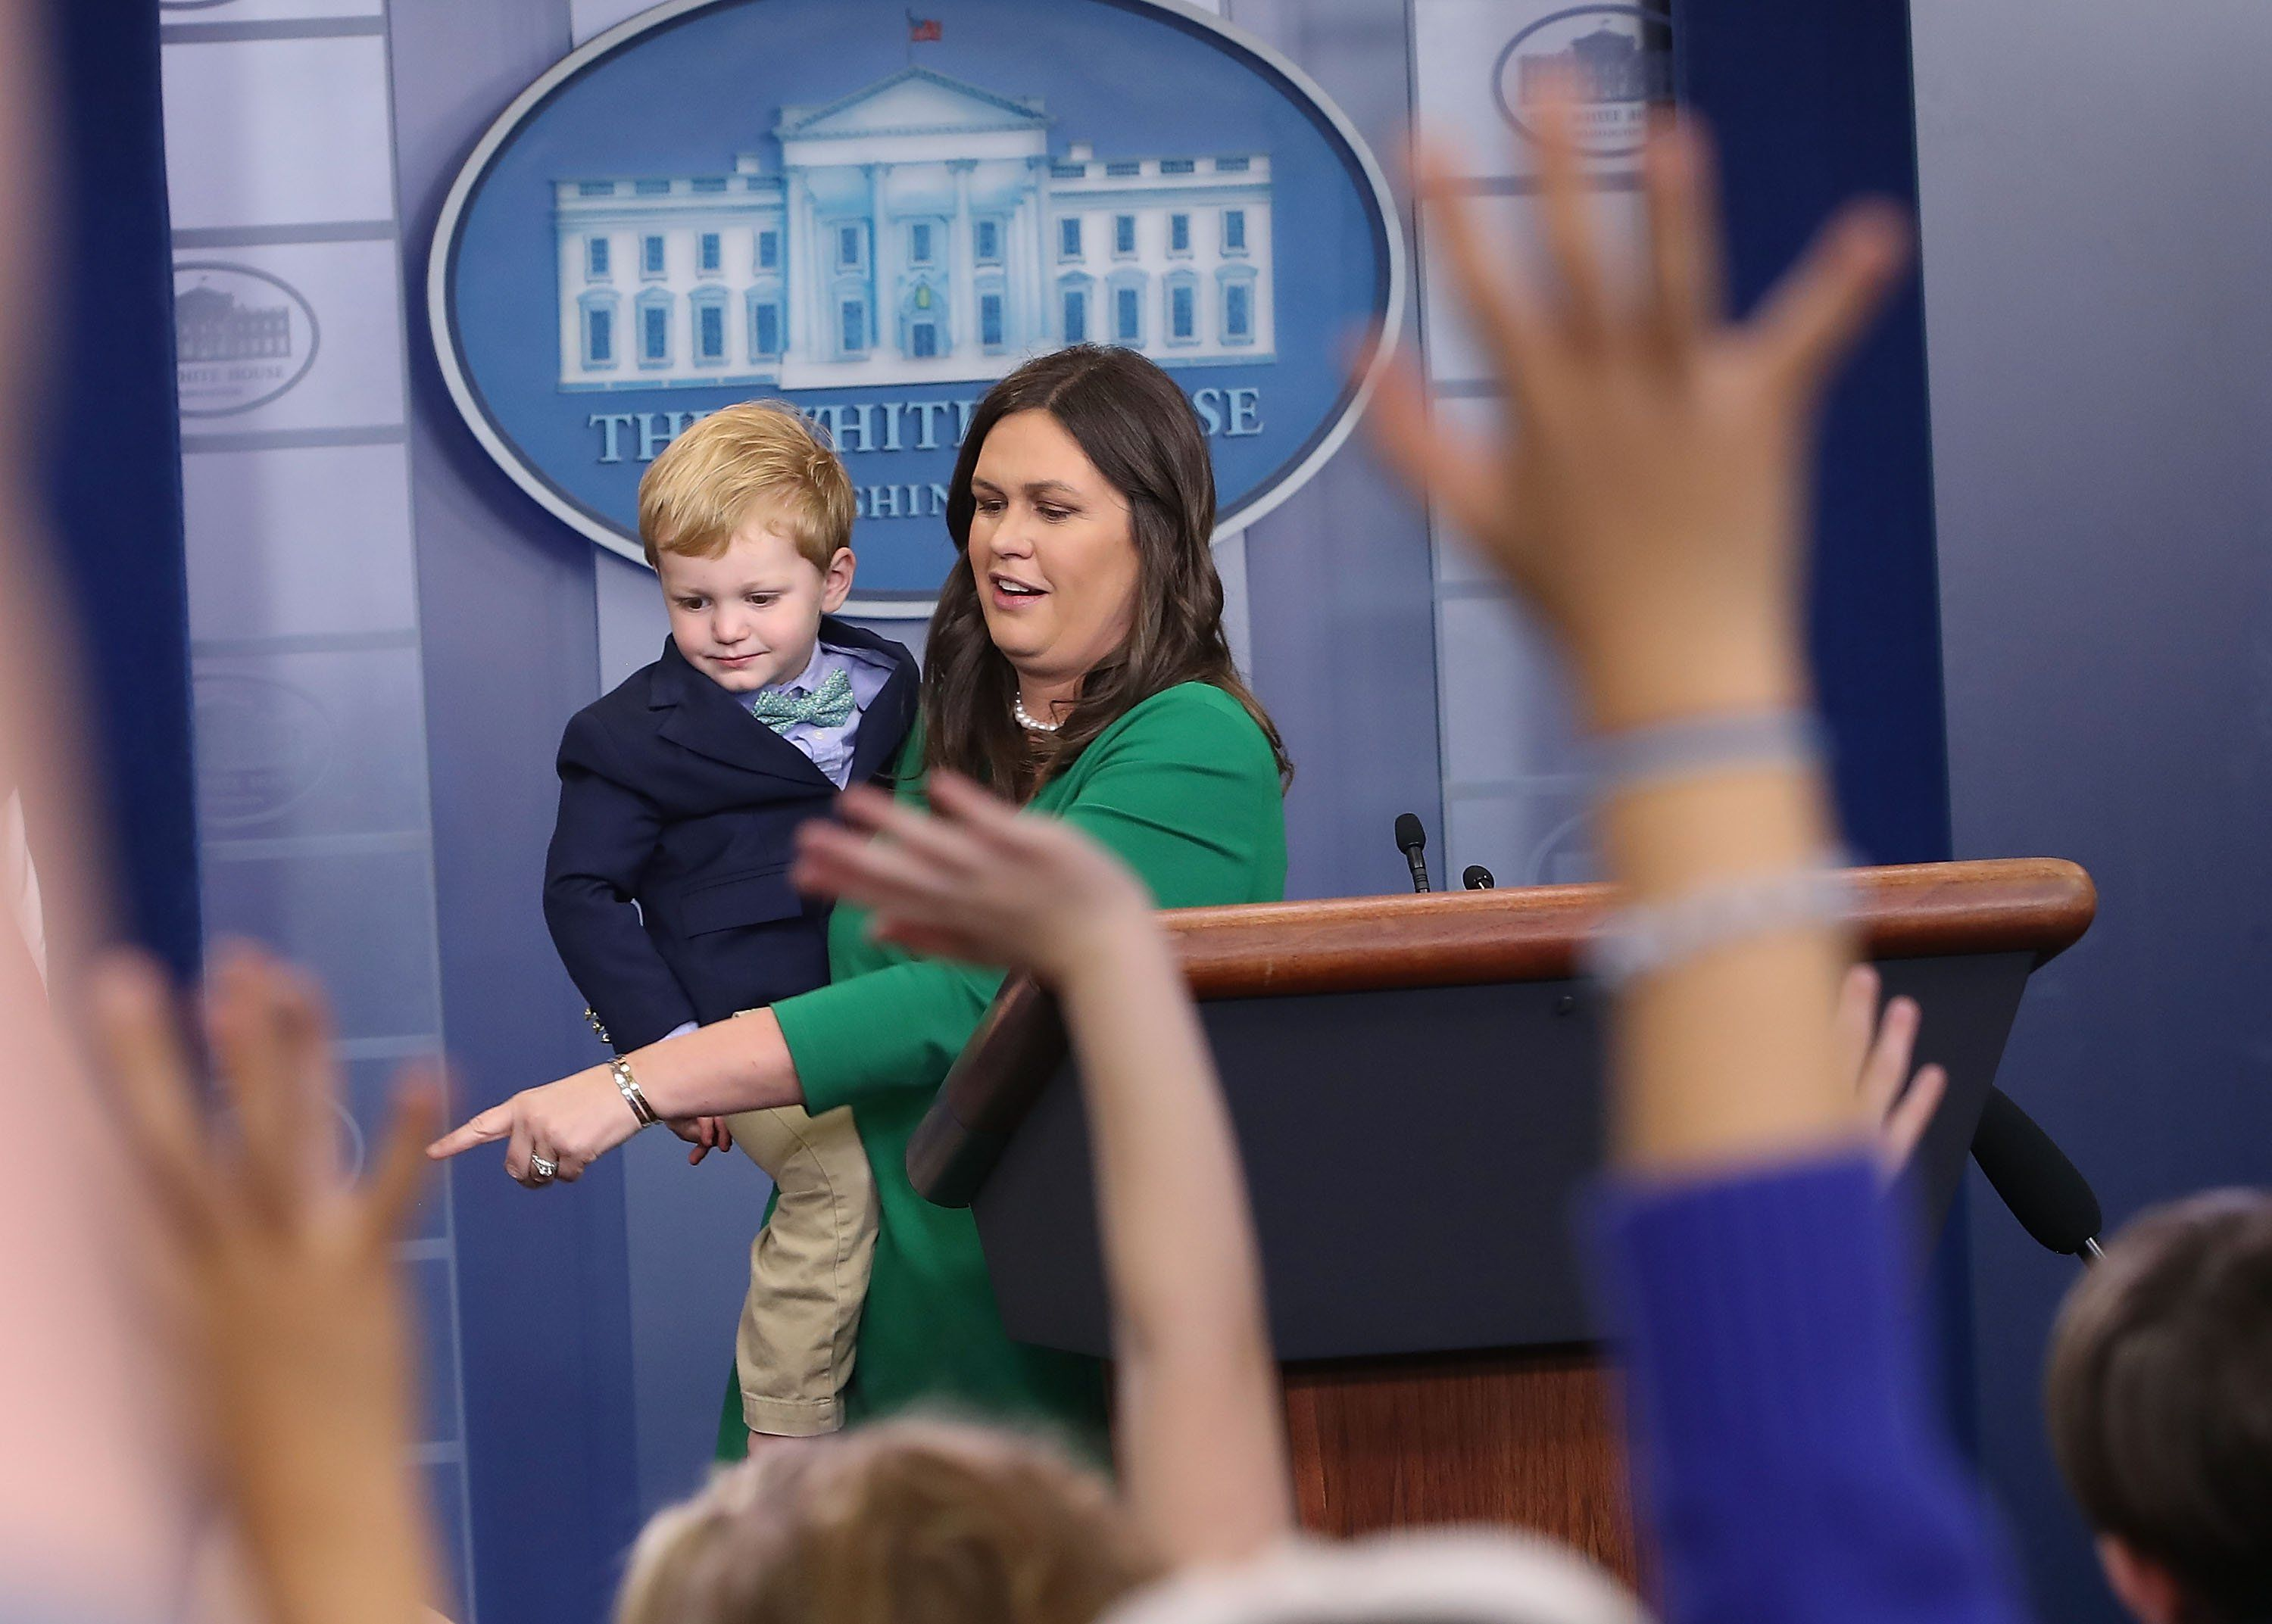 Sarah Sanders Takes Her Kids To Work The Daily Caller Role Models Kids Sarah